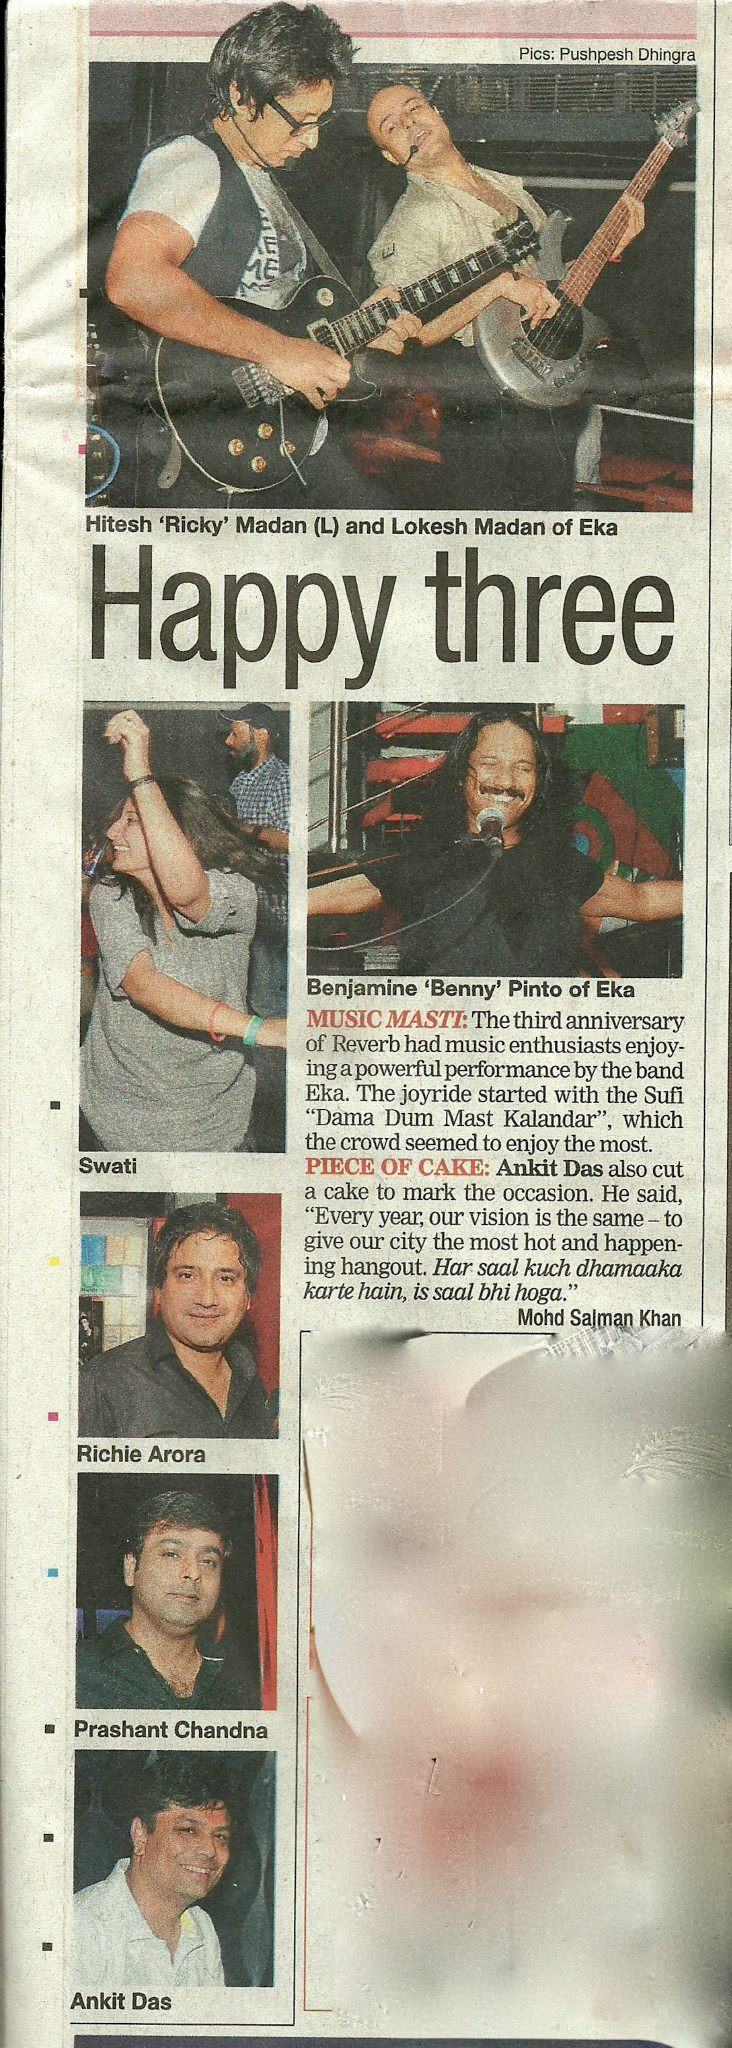 EKA - Delhi Times, Page 3: The Third Anniversary of Reverb had music Enthusiasts enjoying a powerful performance by the band Eka